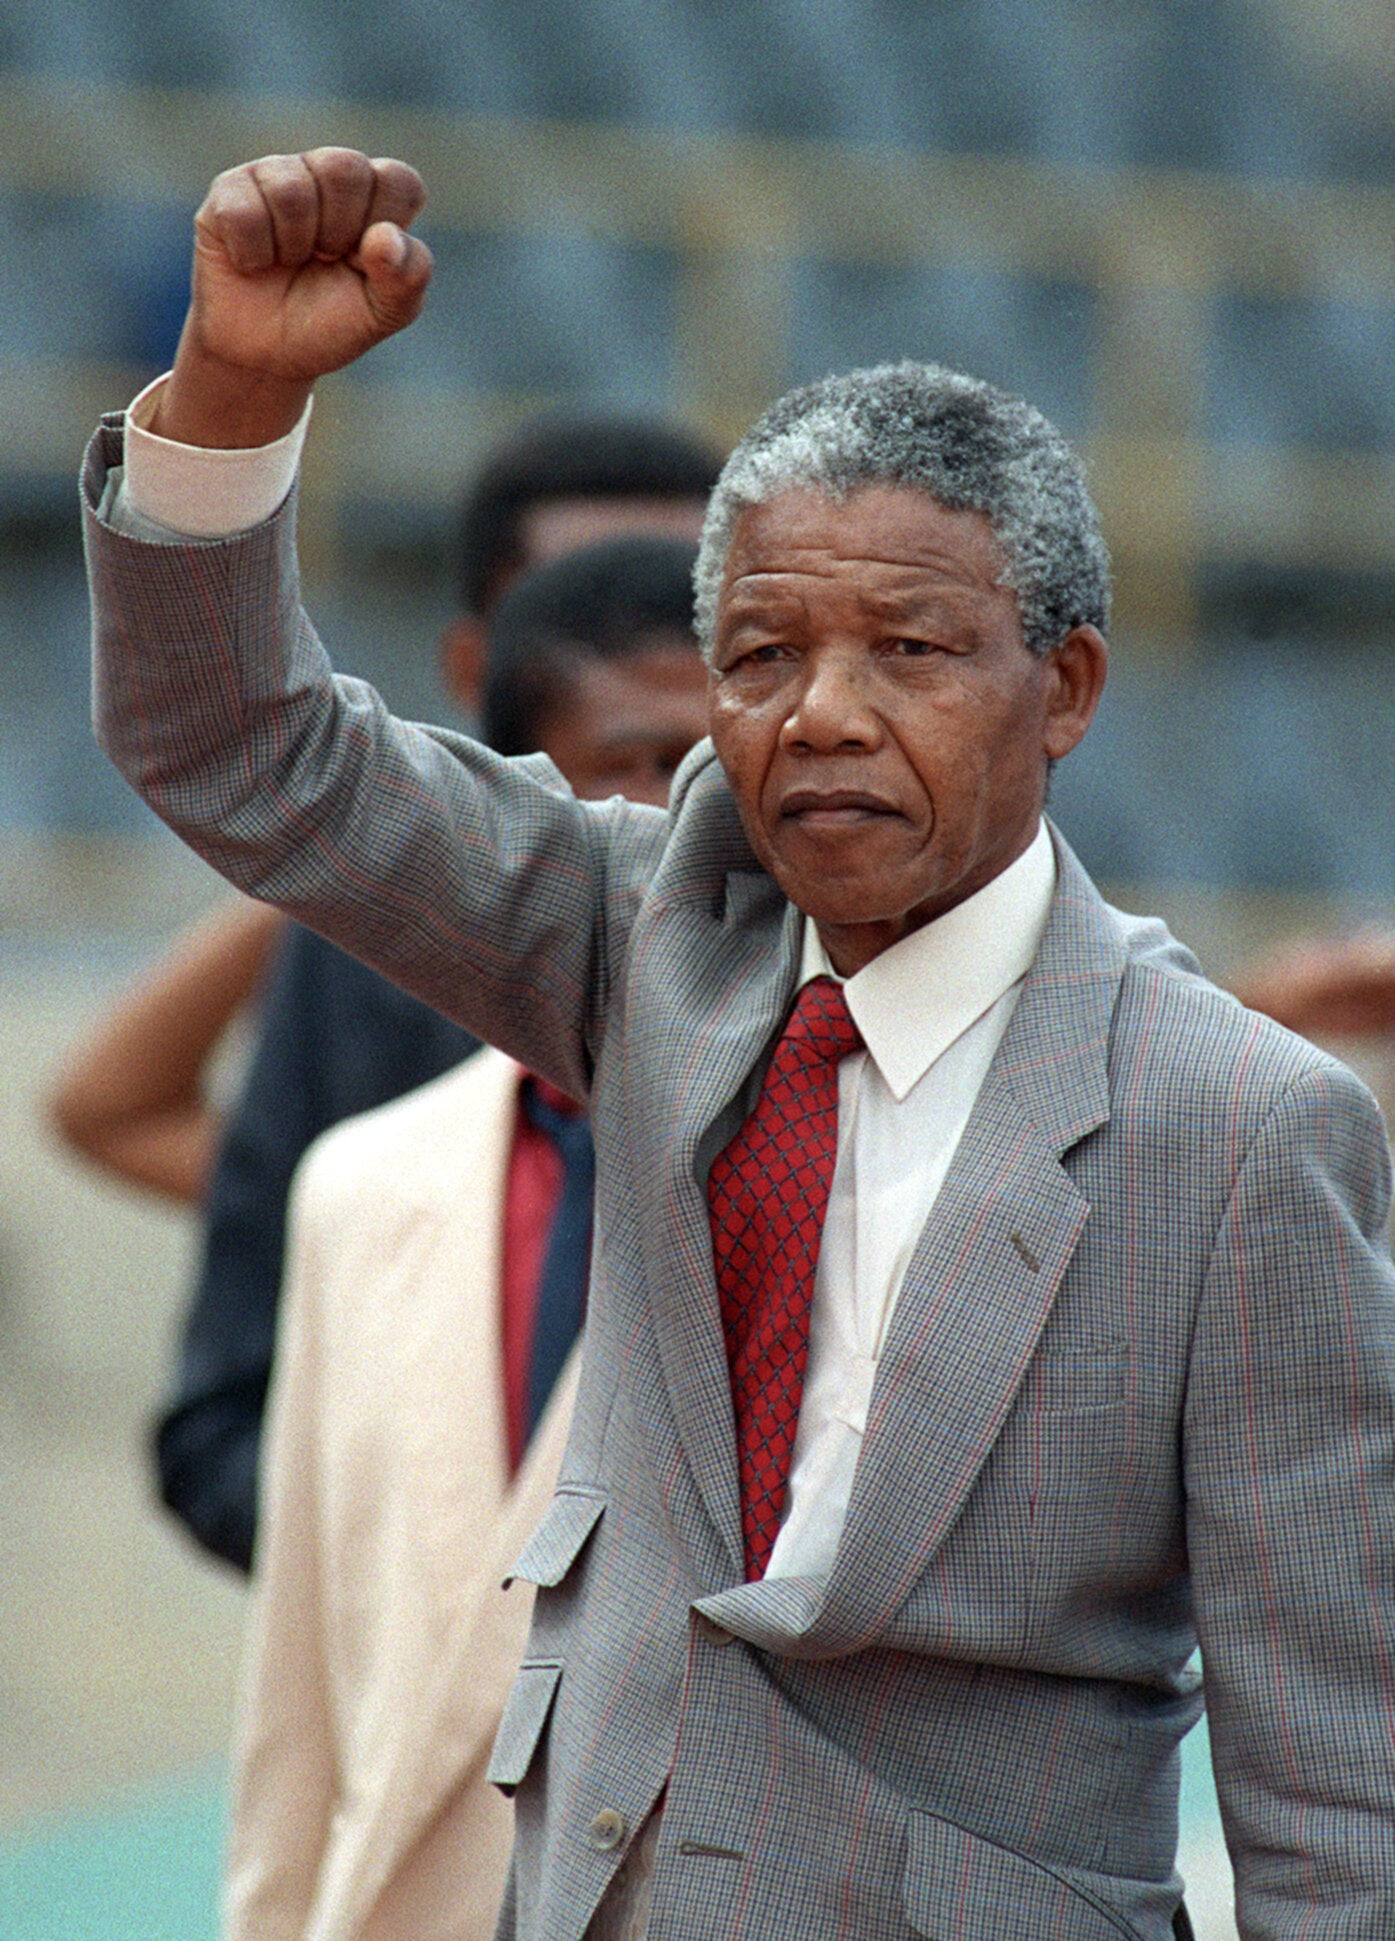 From the NS archive: Nelson Mandela at large